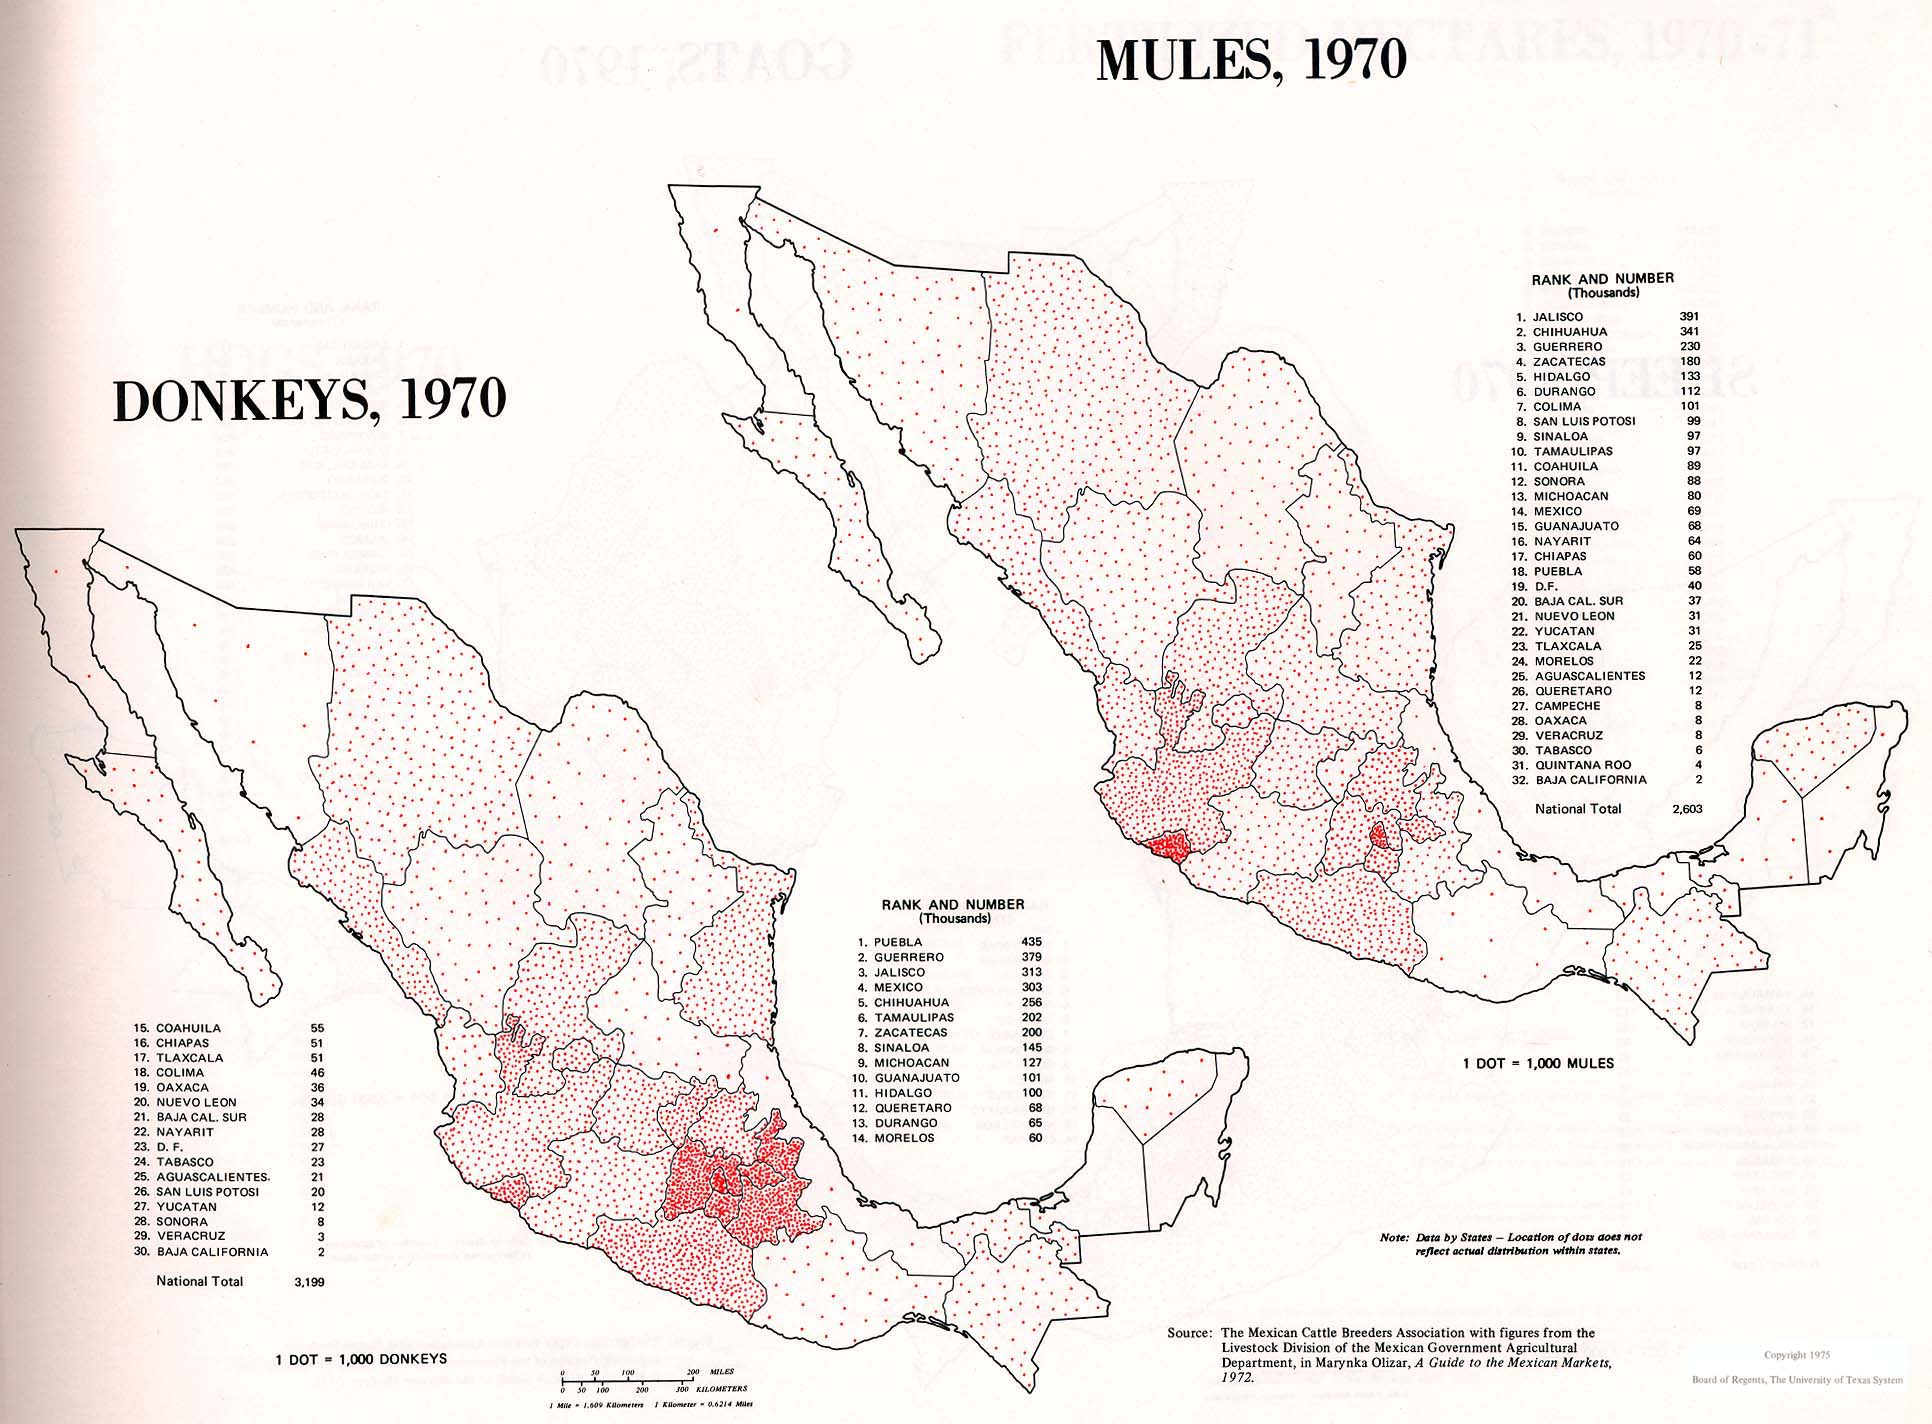 Map of Donkeys and Mules Distribution, Mexico